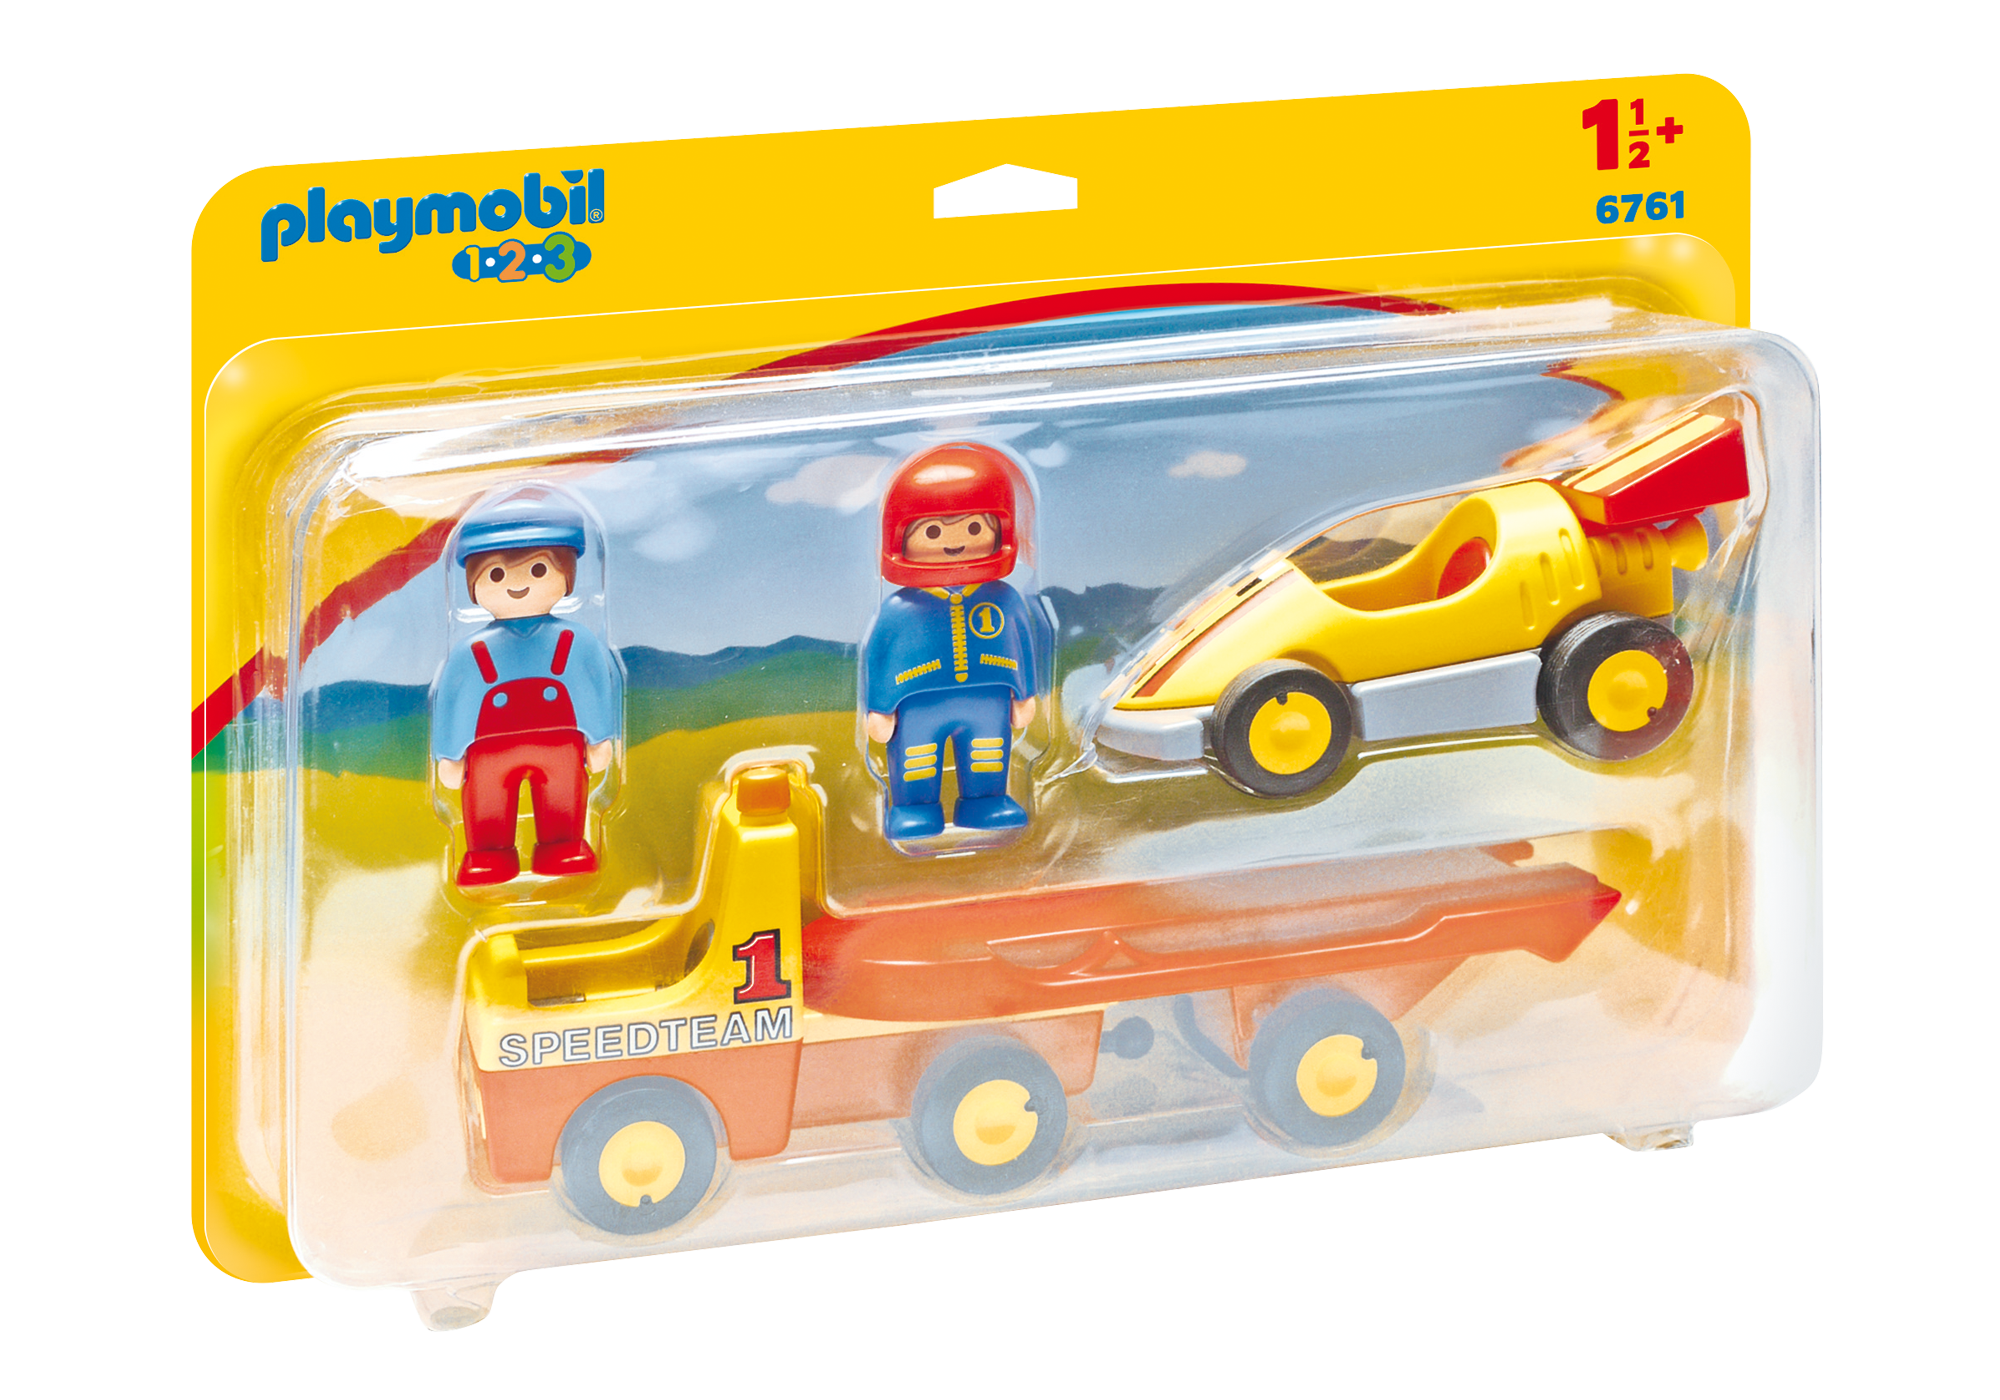 http://media.playmobil.com/i/playmobil/6761_product_box_front/1.2.3 Tow Truck with Race Car